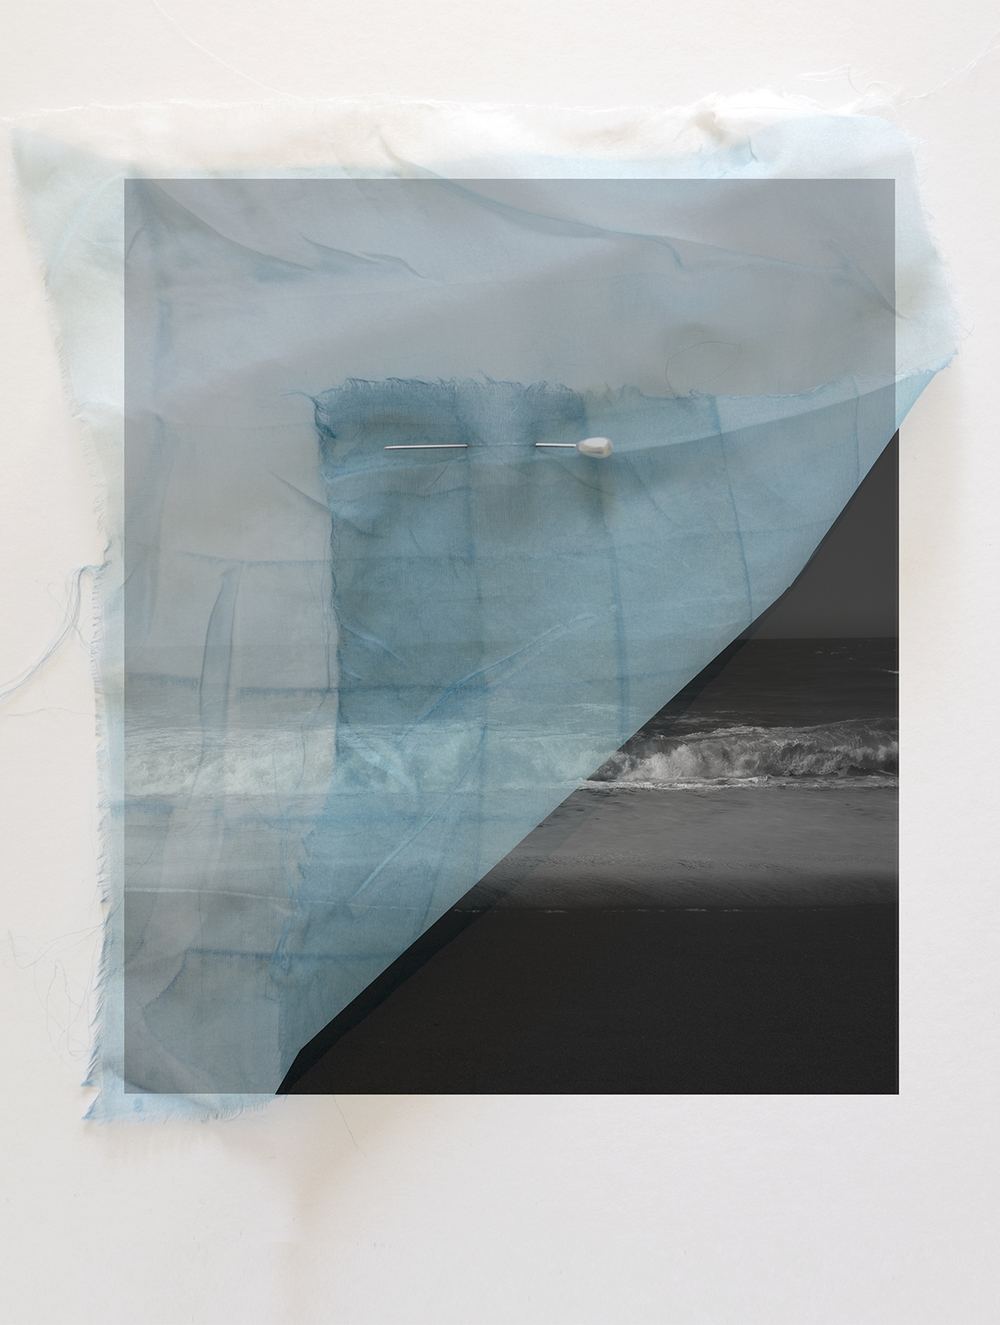 Cyanotype and Ocean, Archival Pigment Print, 2015